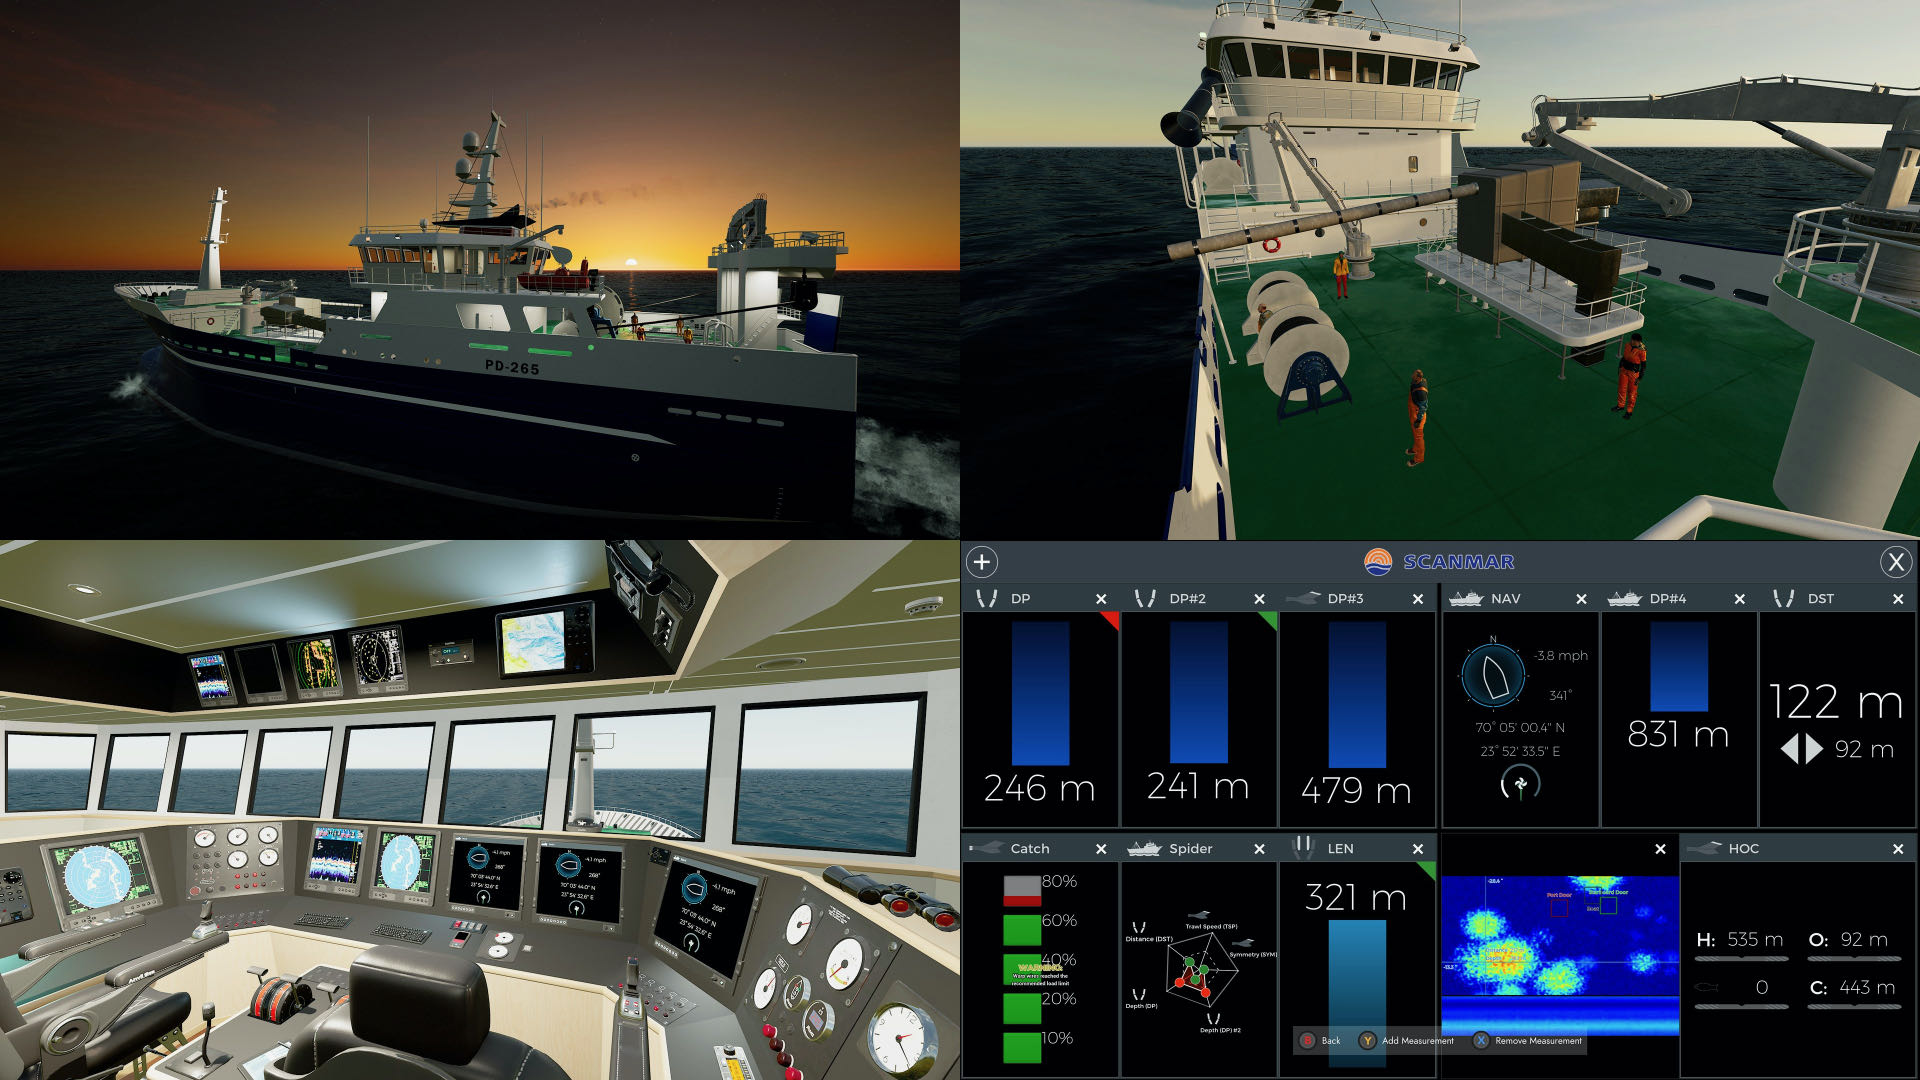 A composite of screenshot from Fishing: North Atlantic, showing various gameplay views and interface elements.